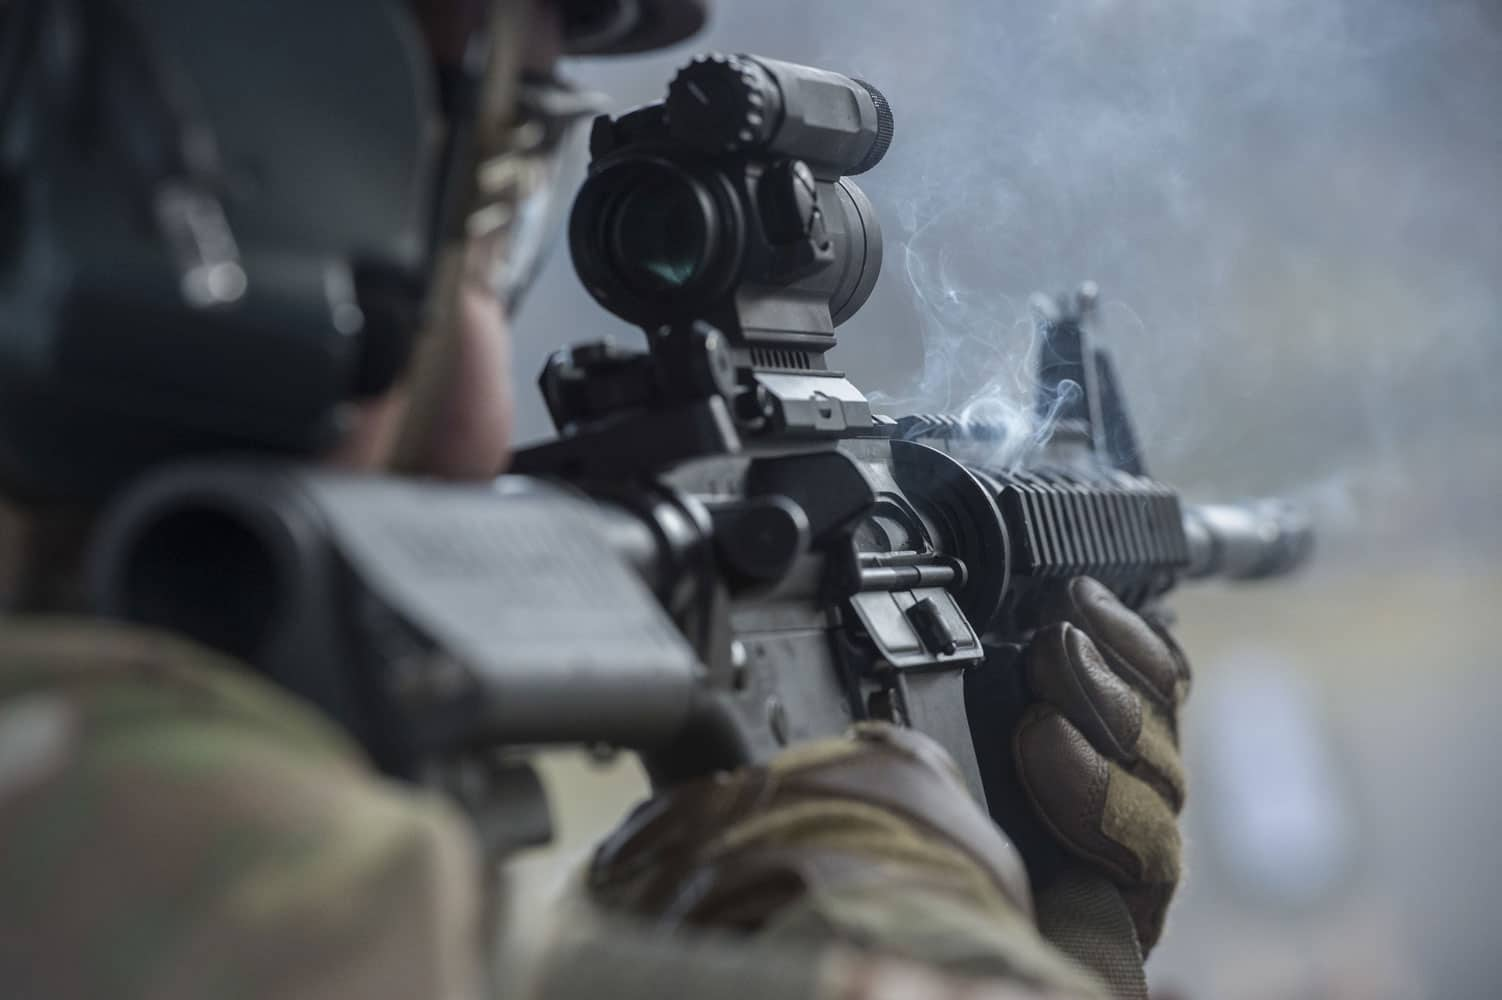 Smoke emanates from U.S. Air Force Senior Airman Brian Melendrez's M4 carbine during live-fire sustainment training at Joint Base Elmendorf-Richardson, Alaska.